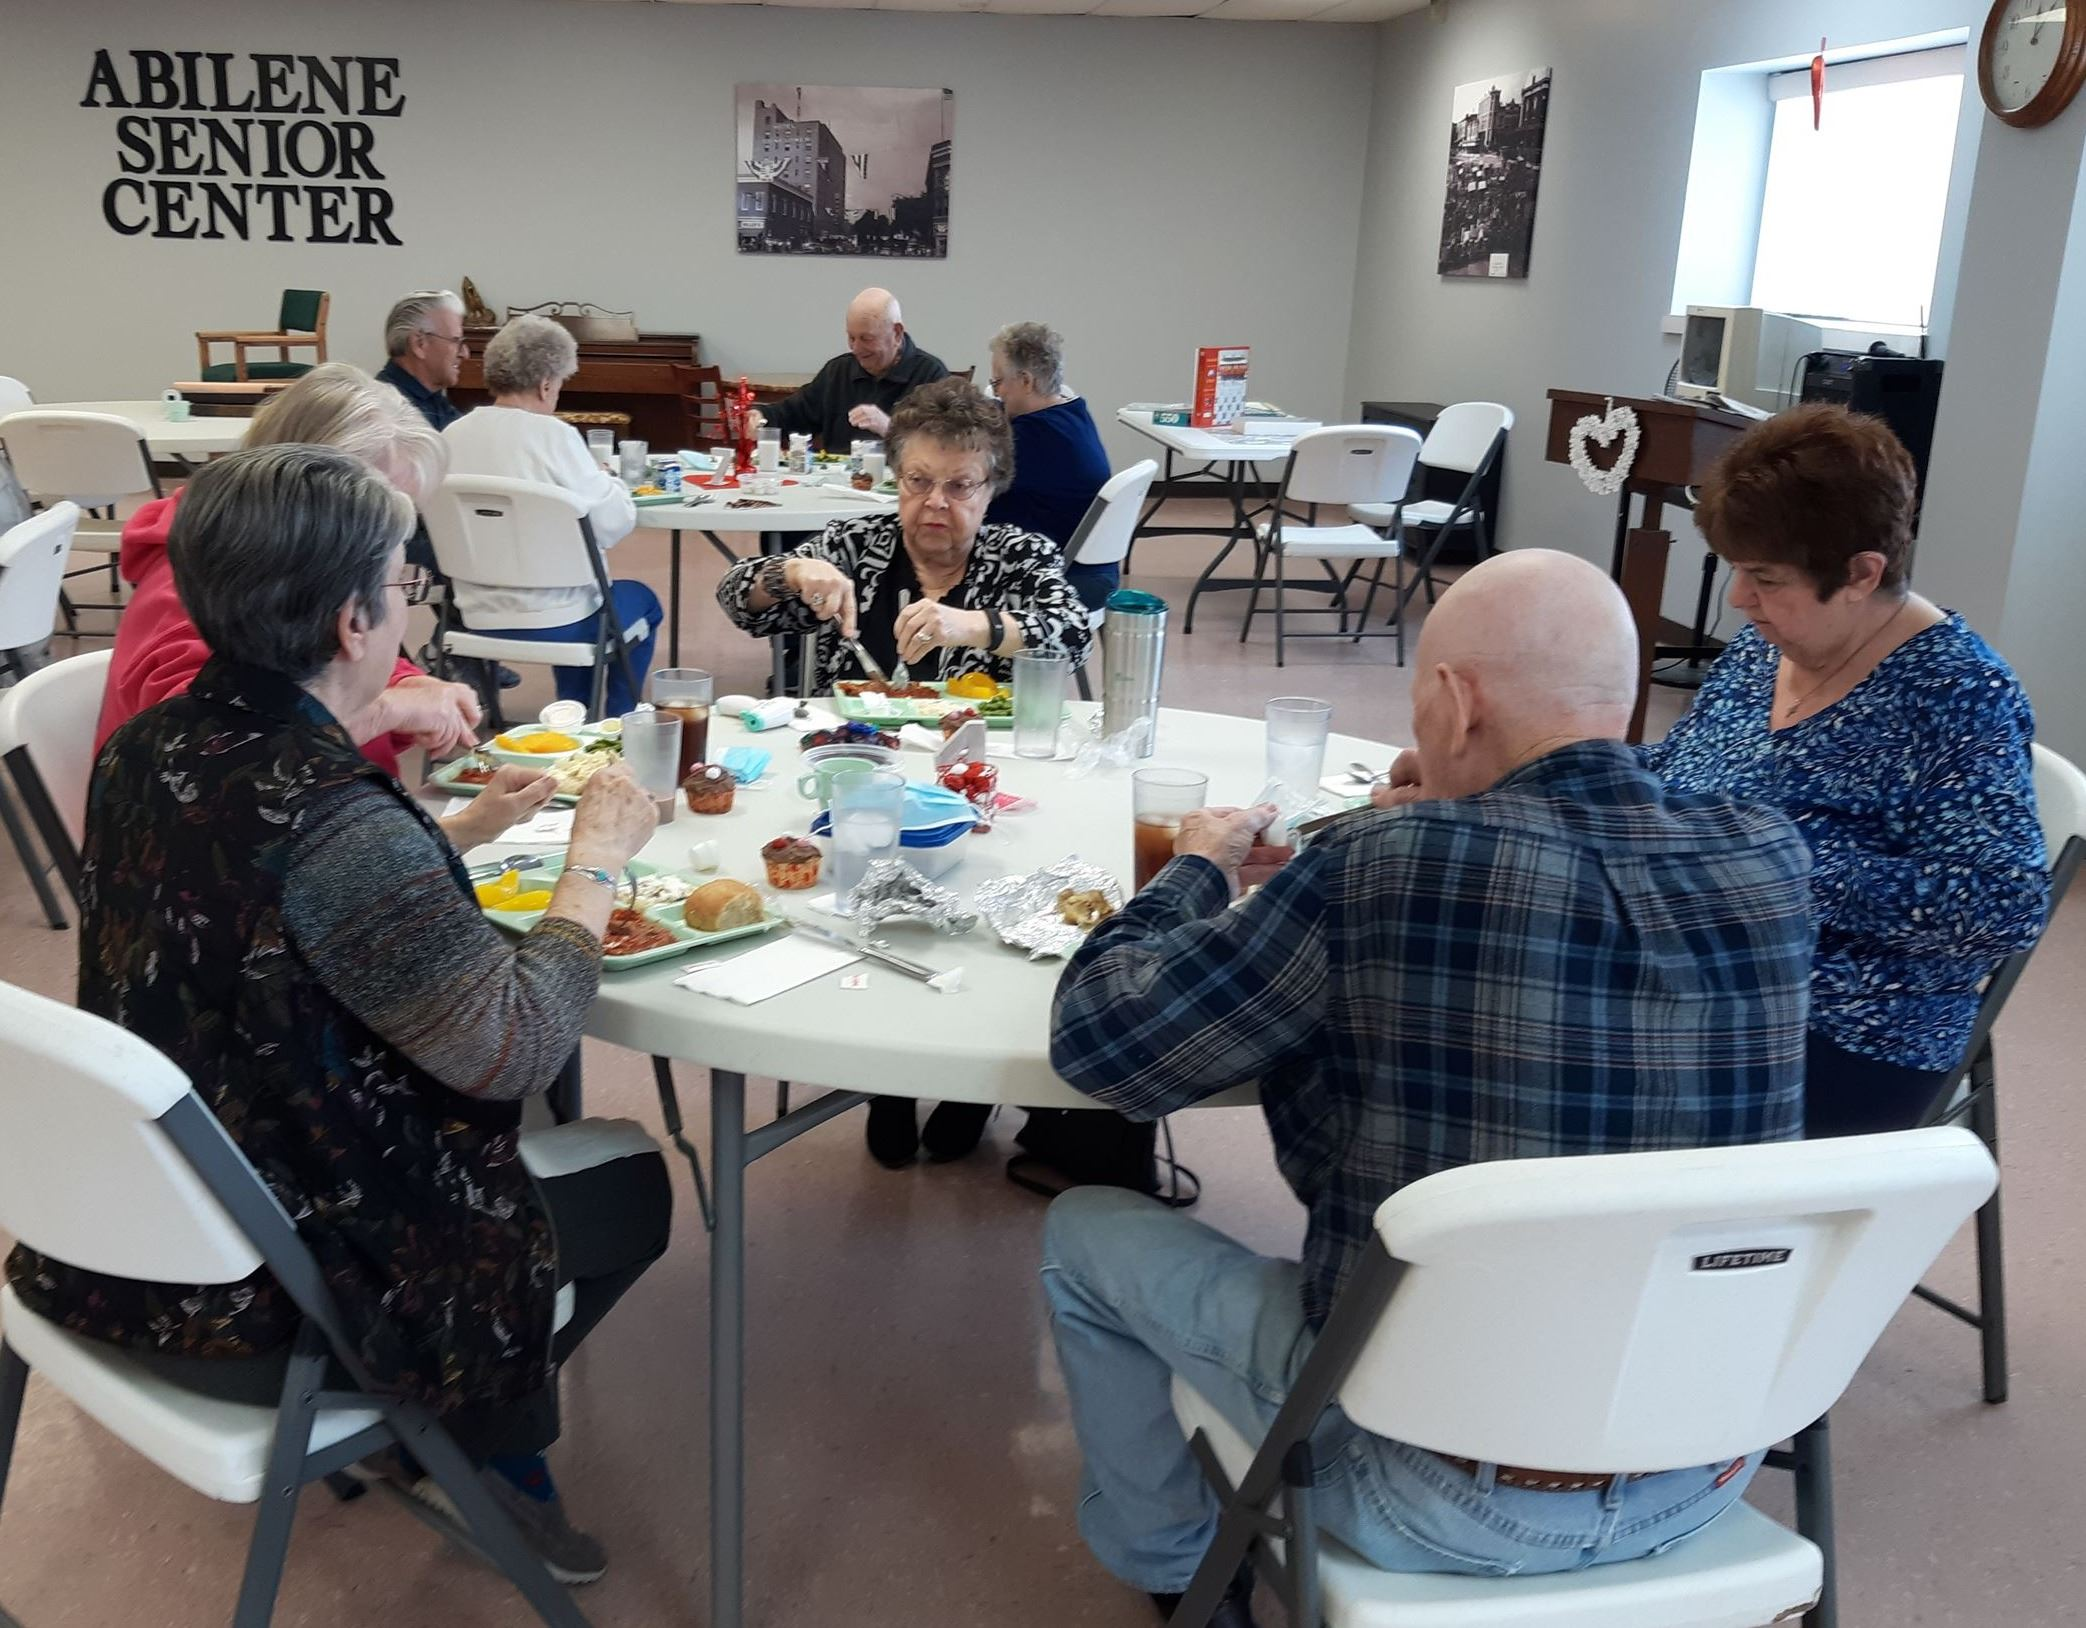 People visiting over lunch at the Abilene Senior Center